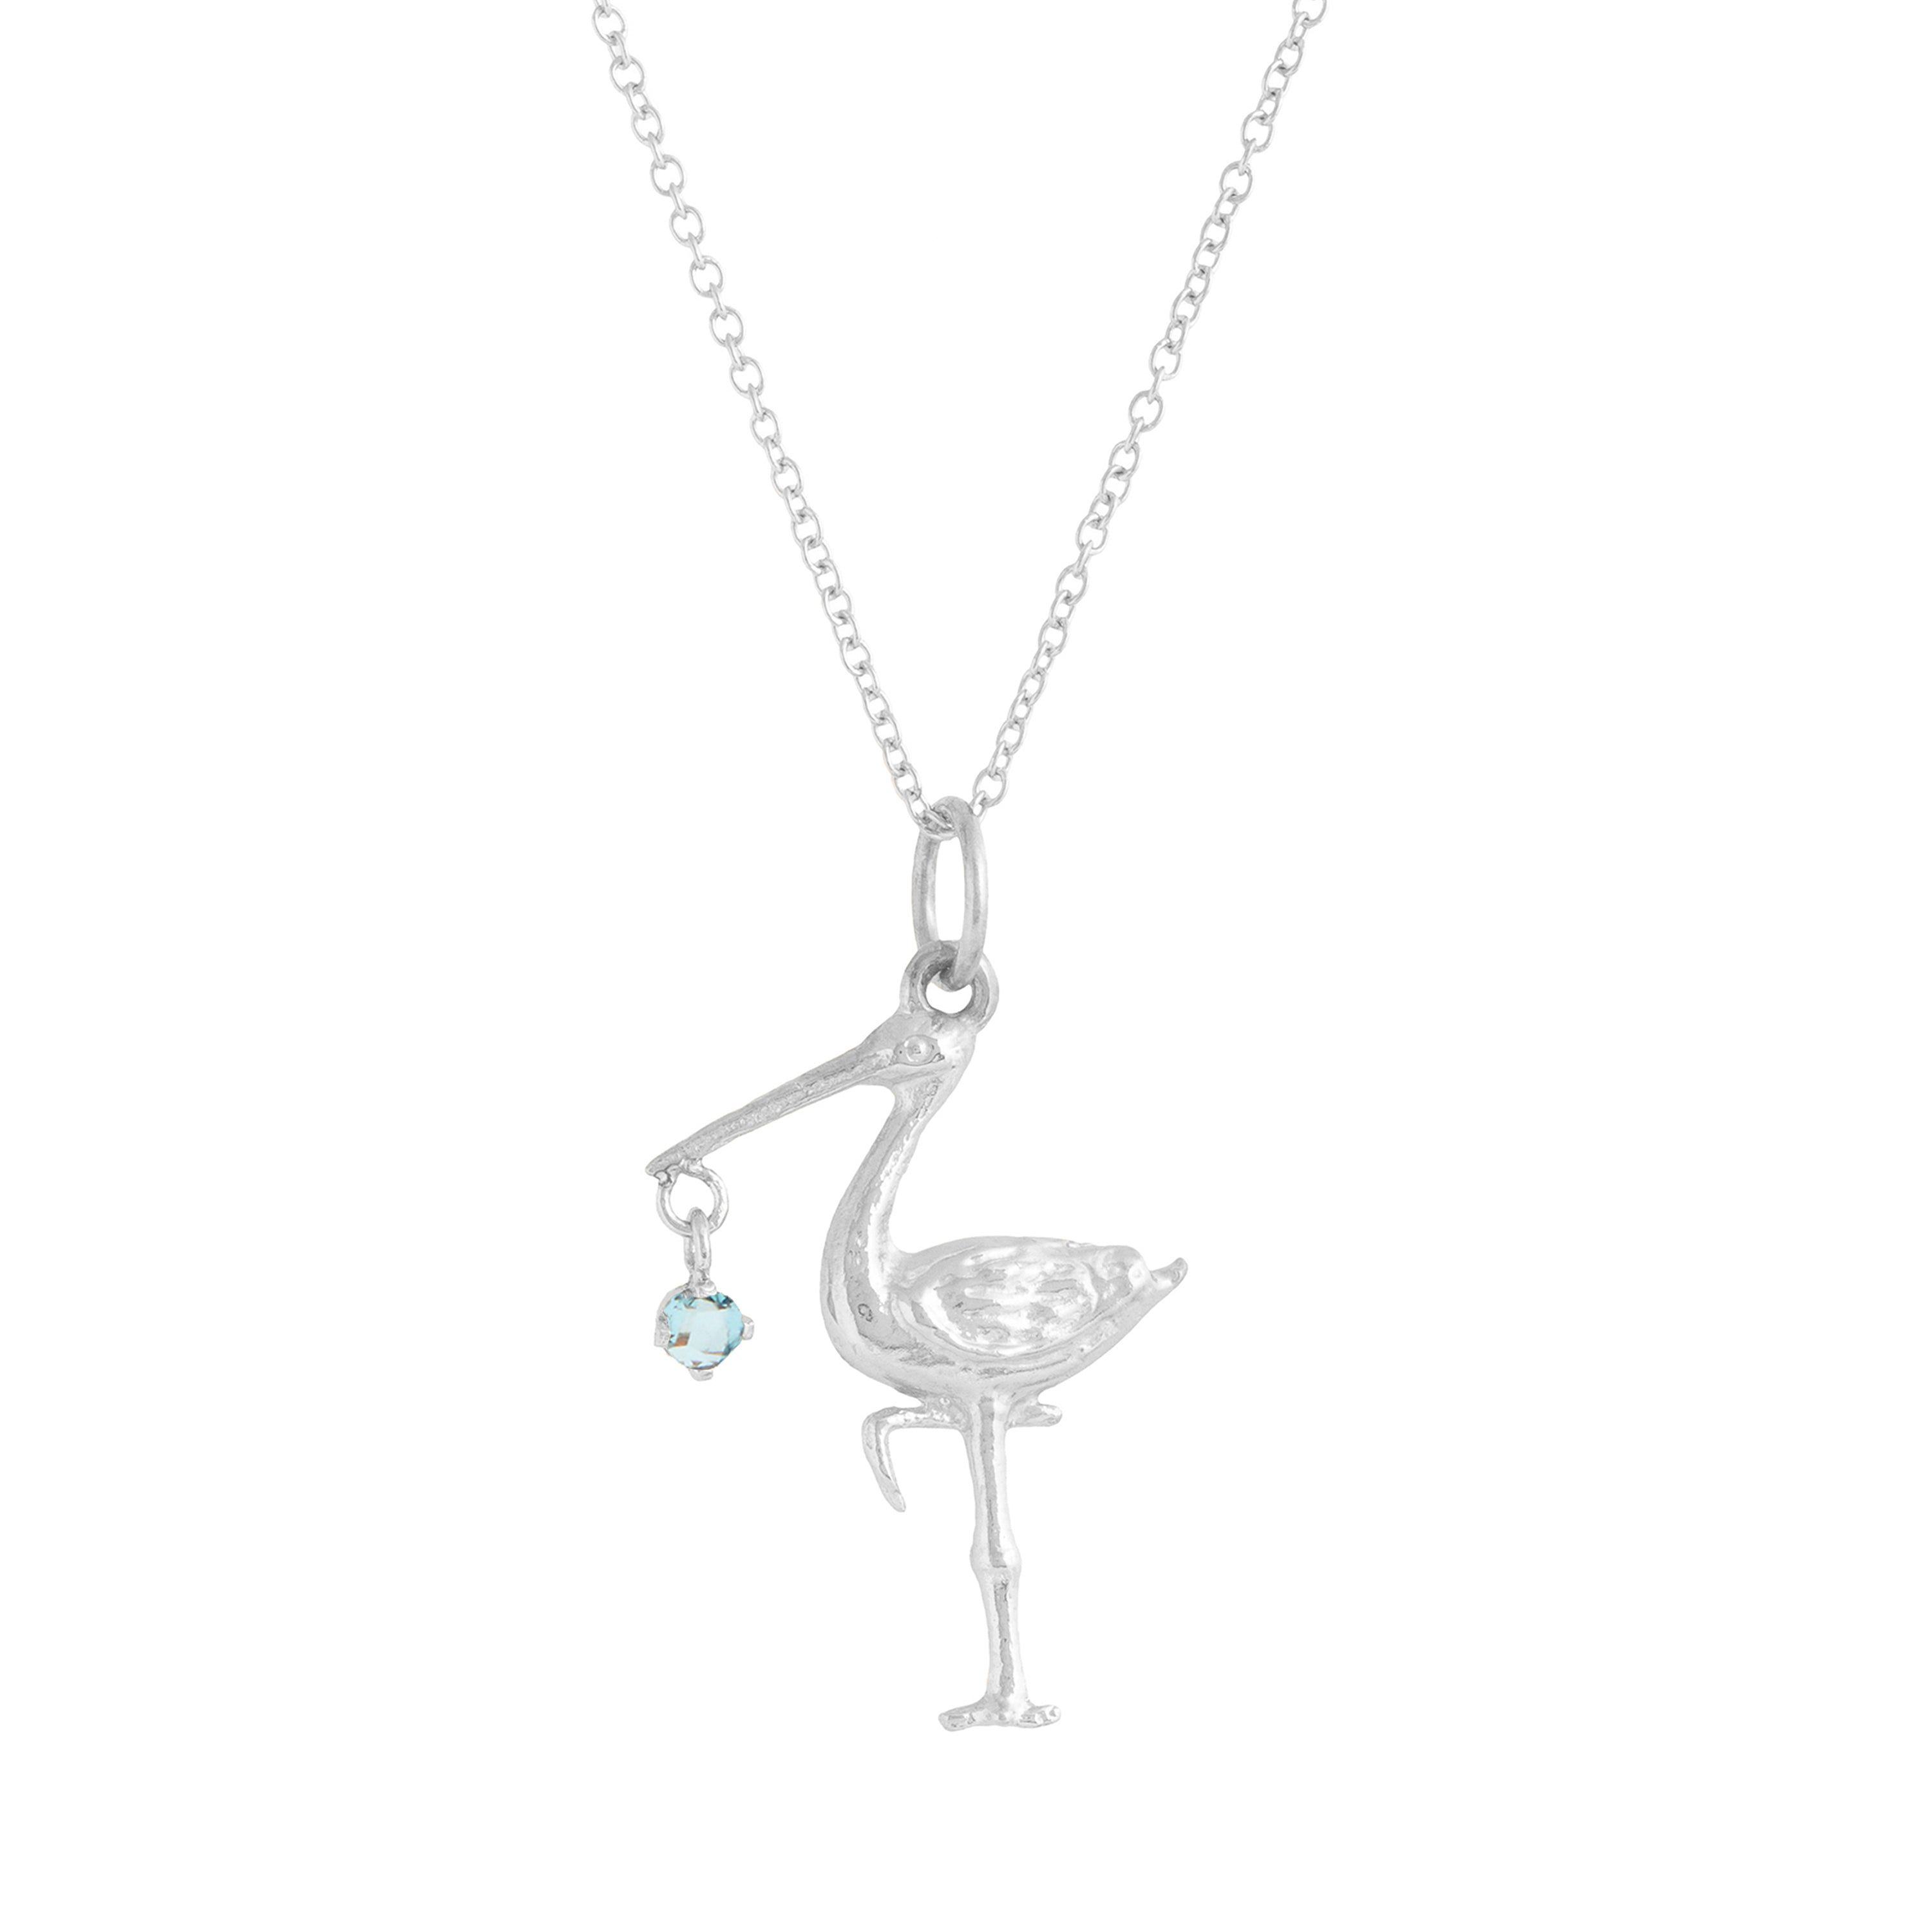 The F&B White Gold Birthstone Stork Necklace